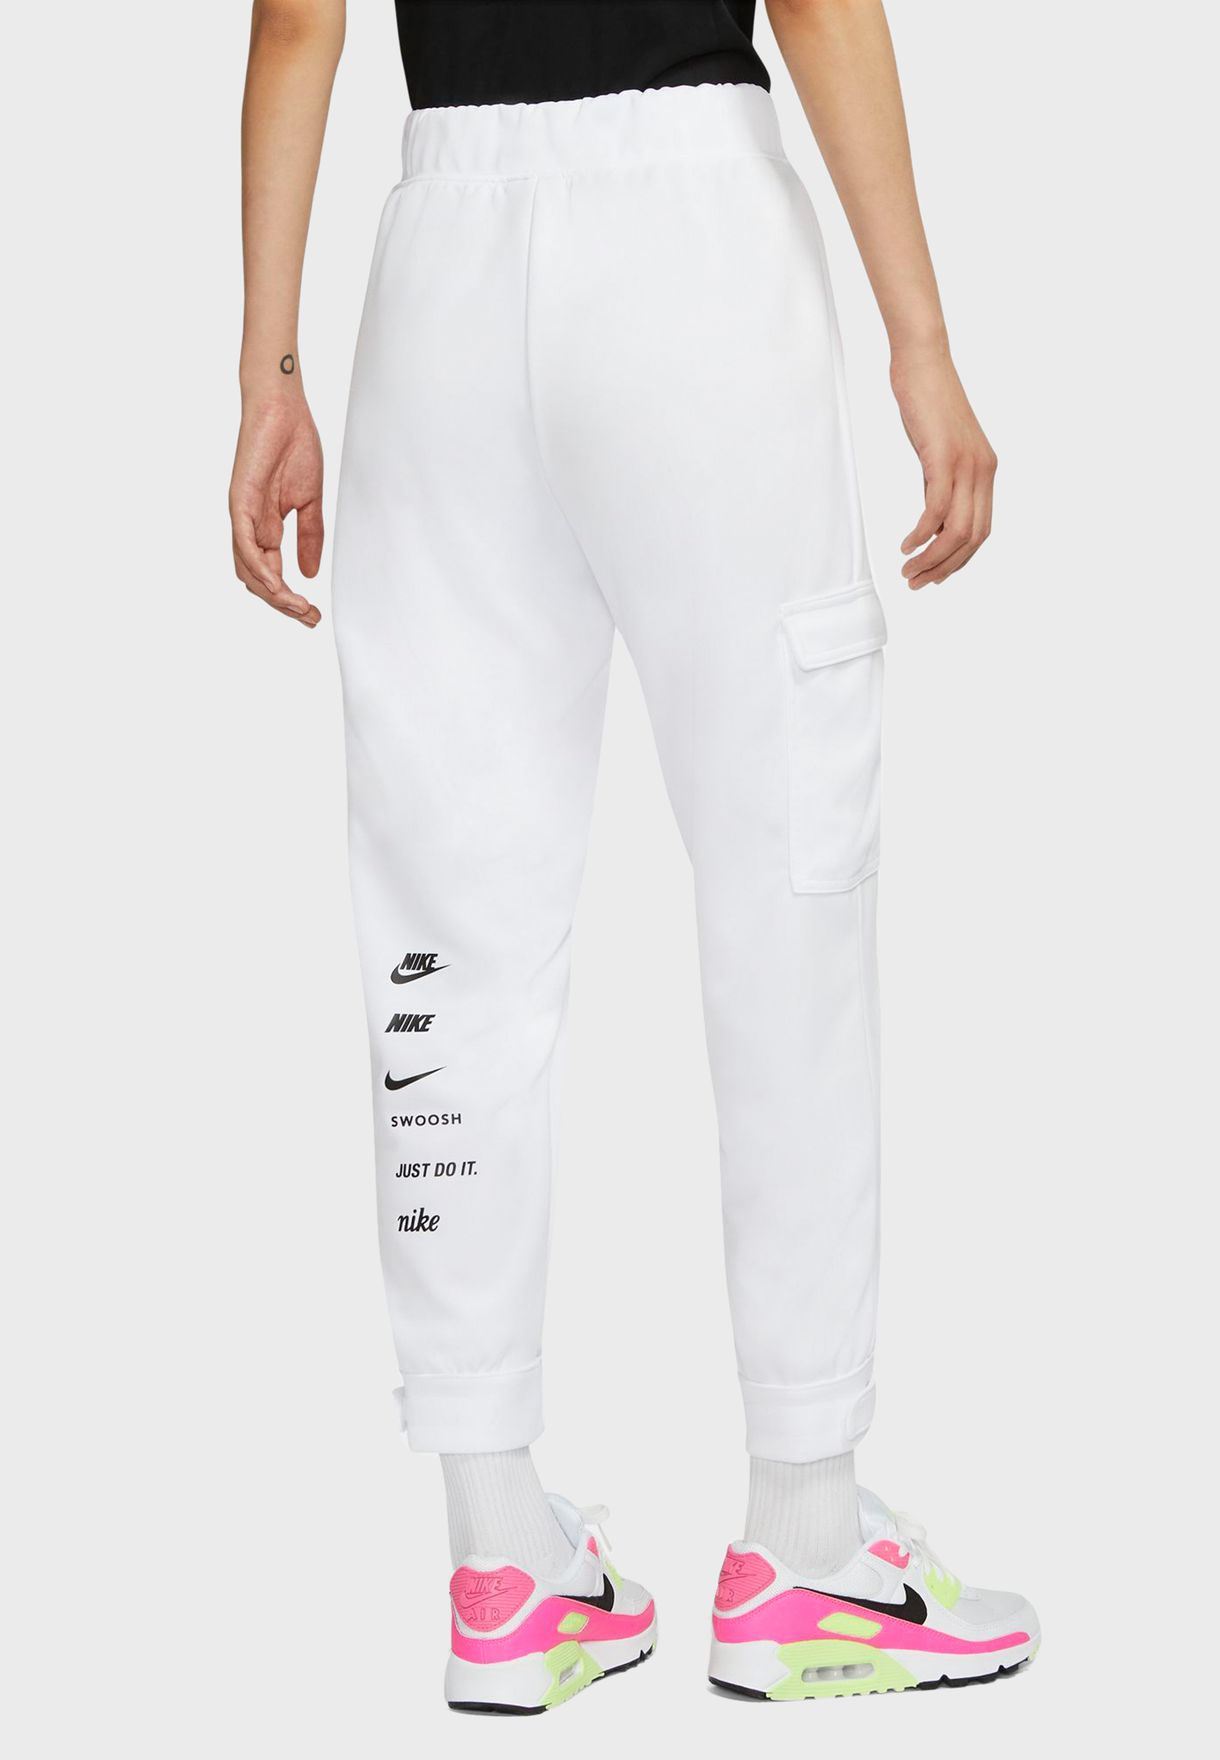 NSW Swoosh Sweatpants